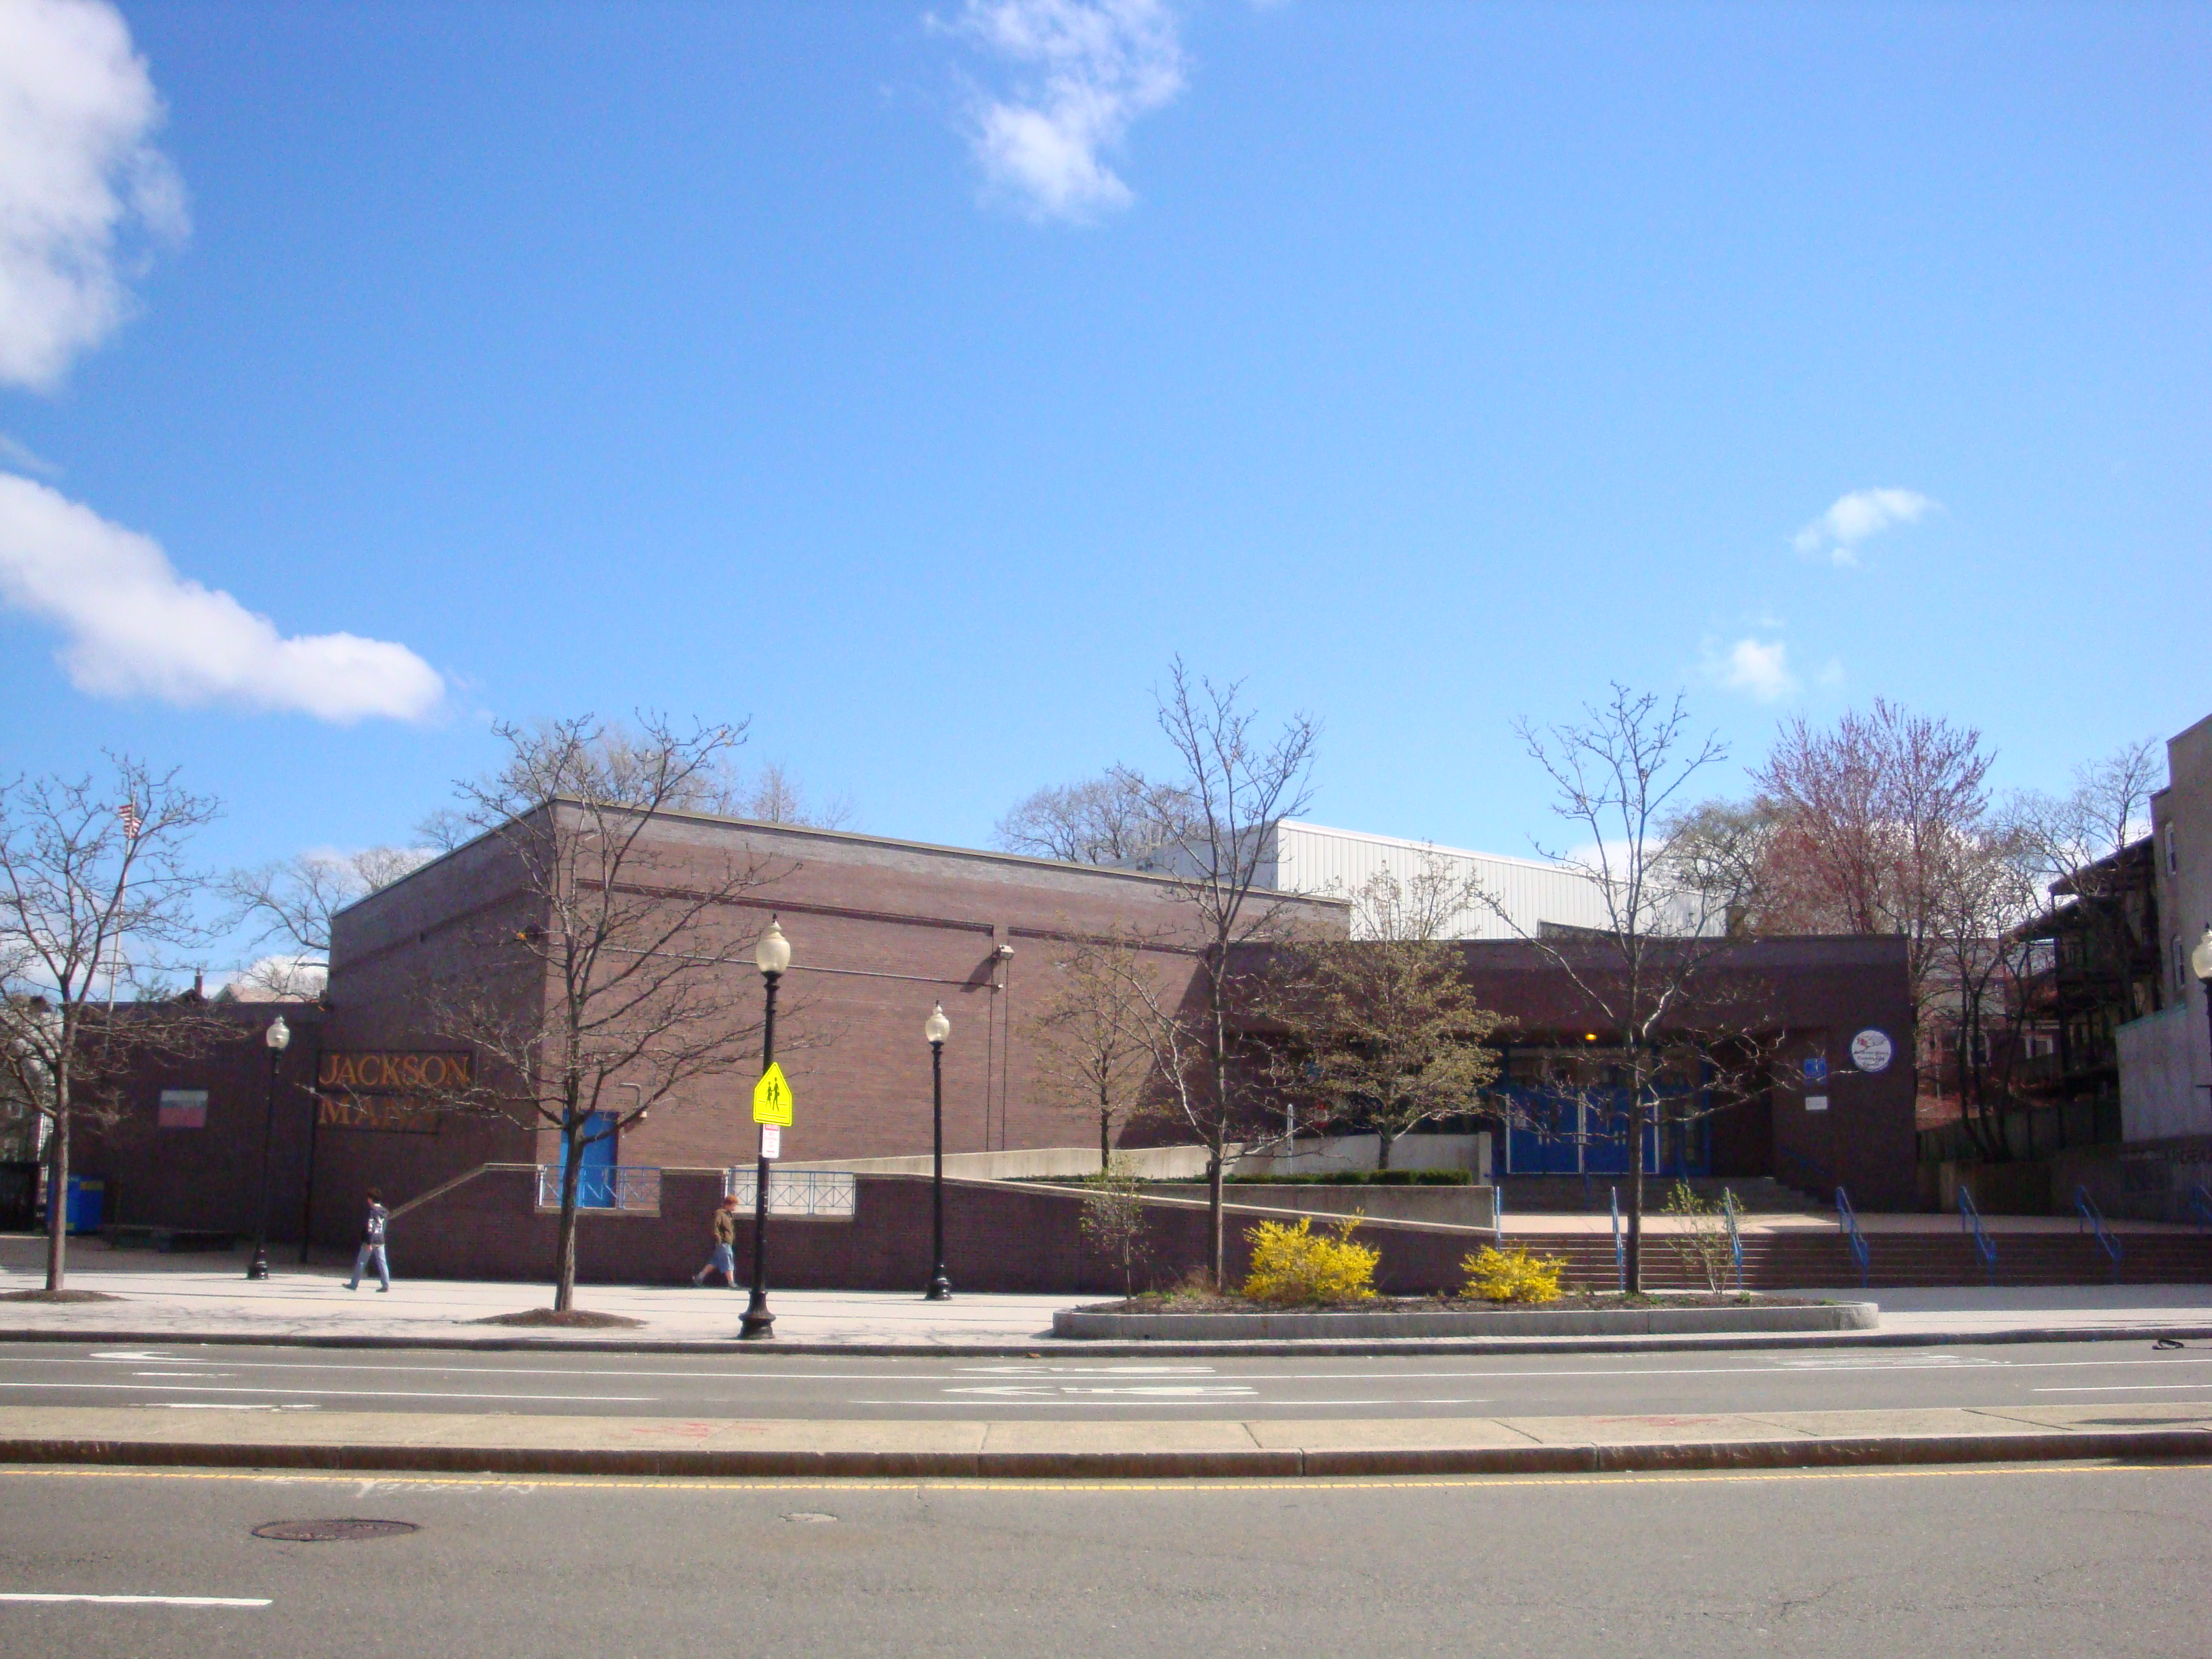 BCYF JACKSON/MANN COMMUNITY CENTER